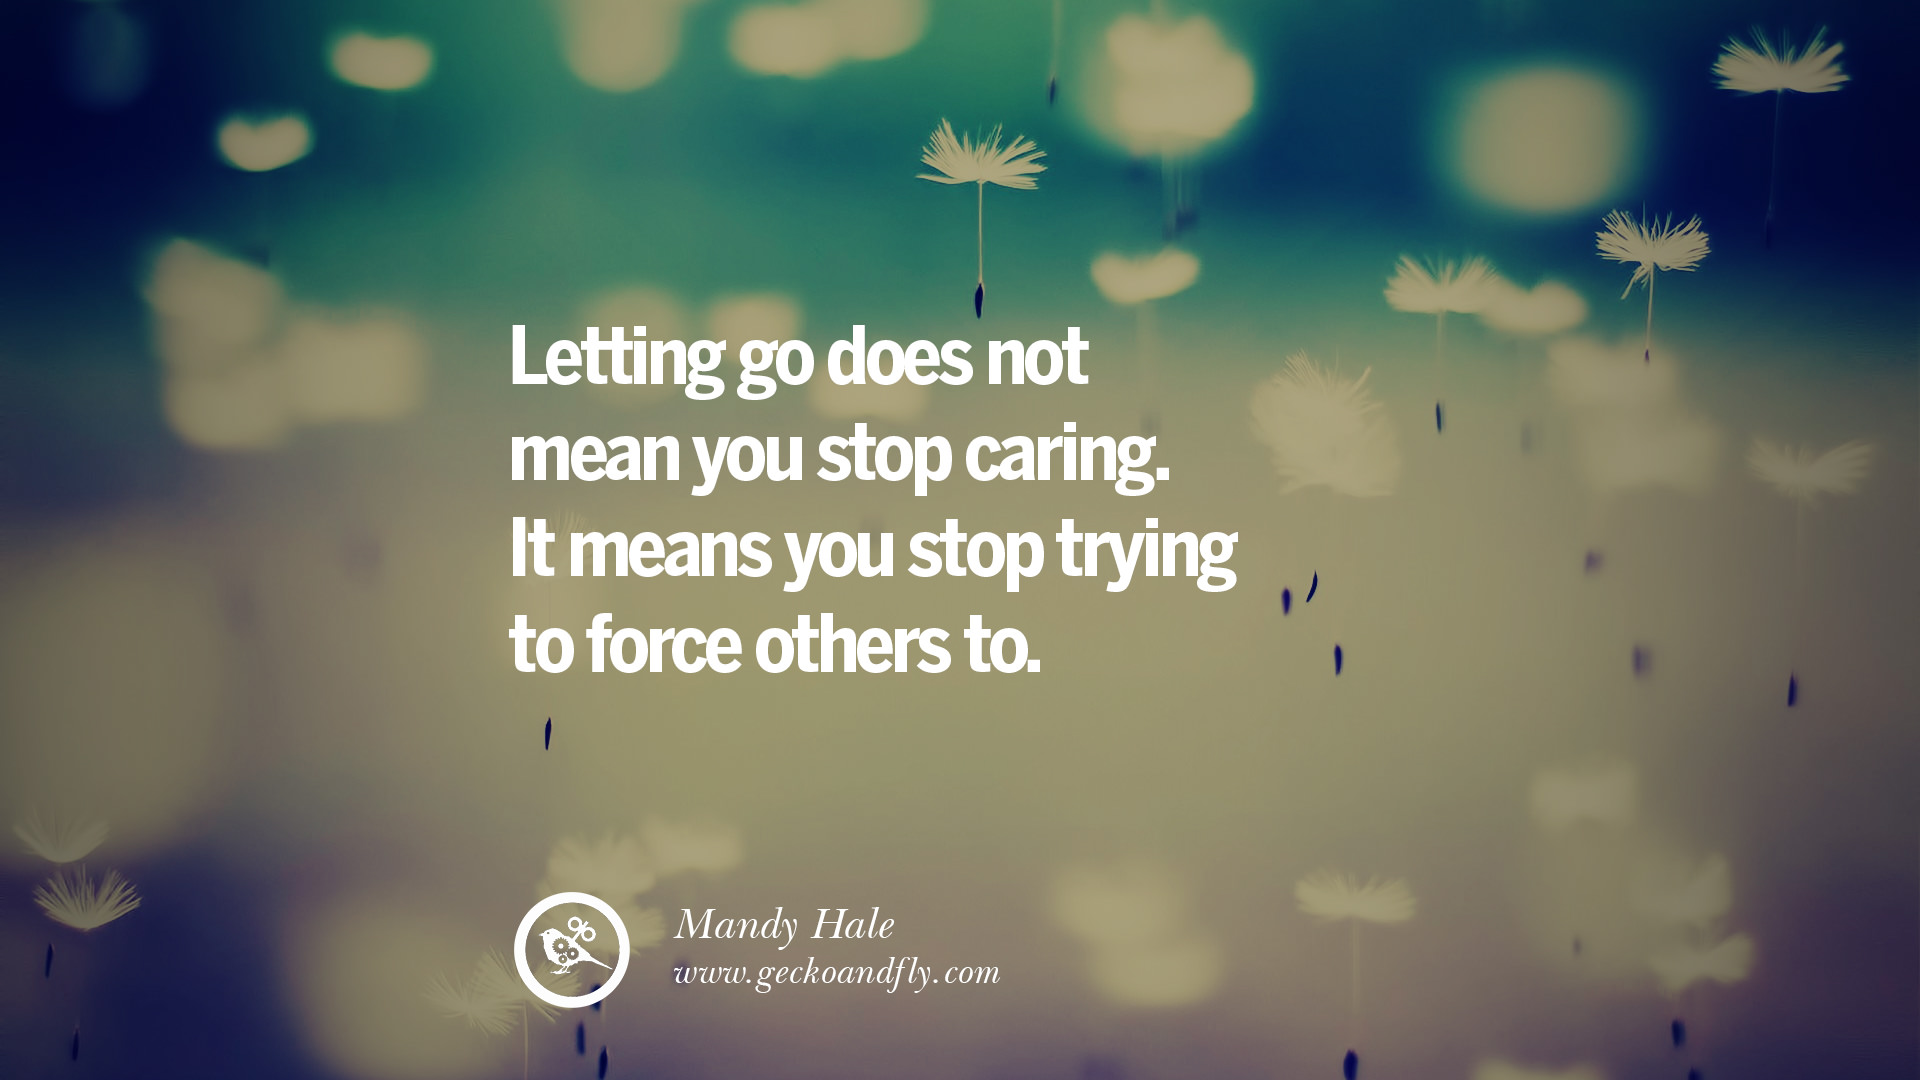 Quotes About Love And Letting Go Tumblr : 50 Quotes About Moving On And Letting Go Of Relationship And Love ...